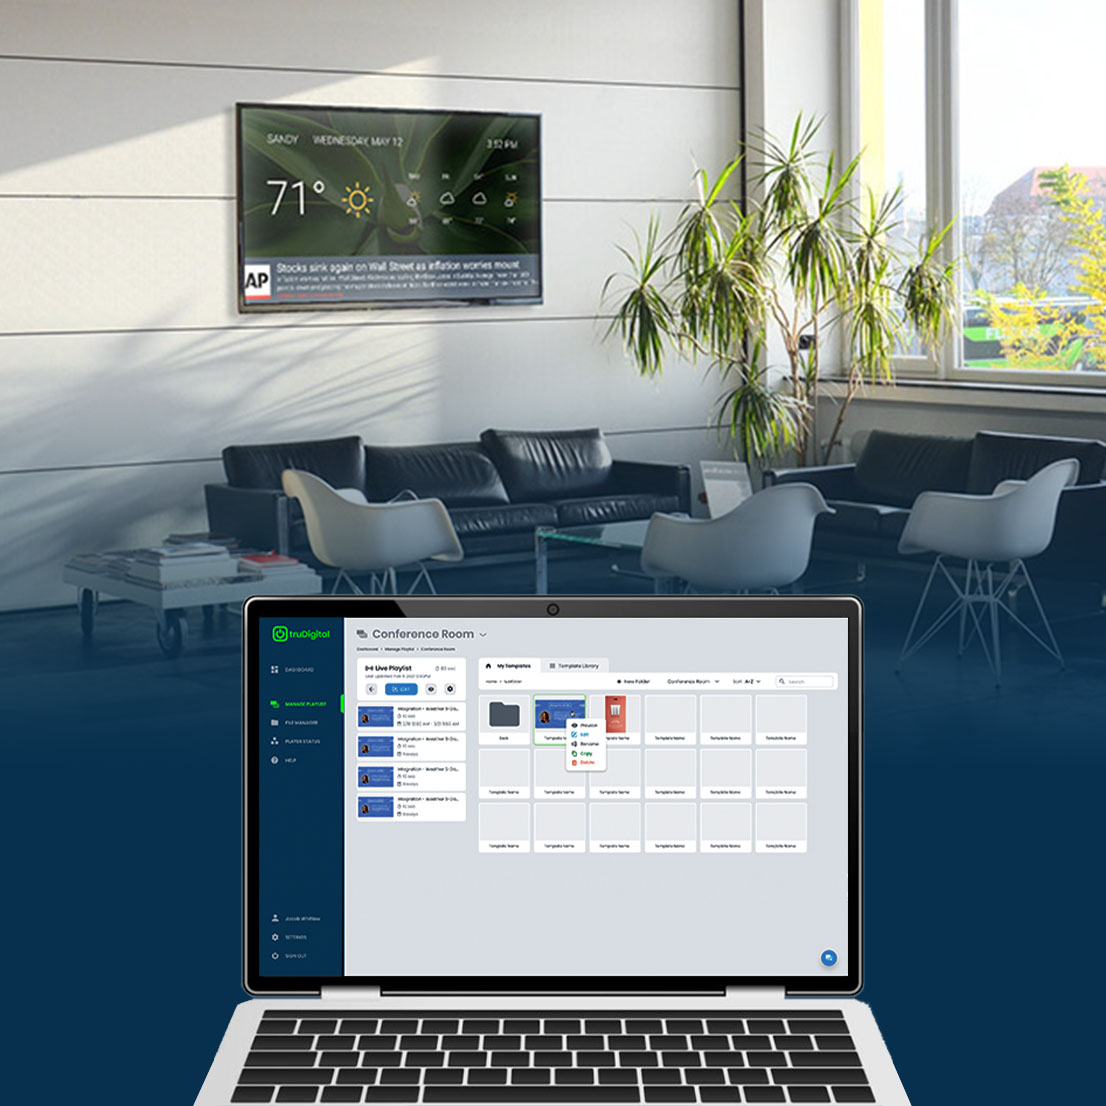 Control the content on your TV screens from anywhere.